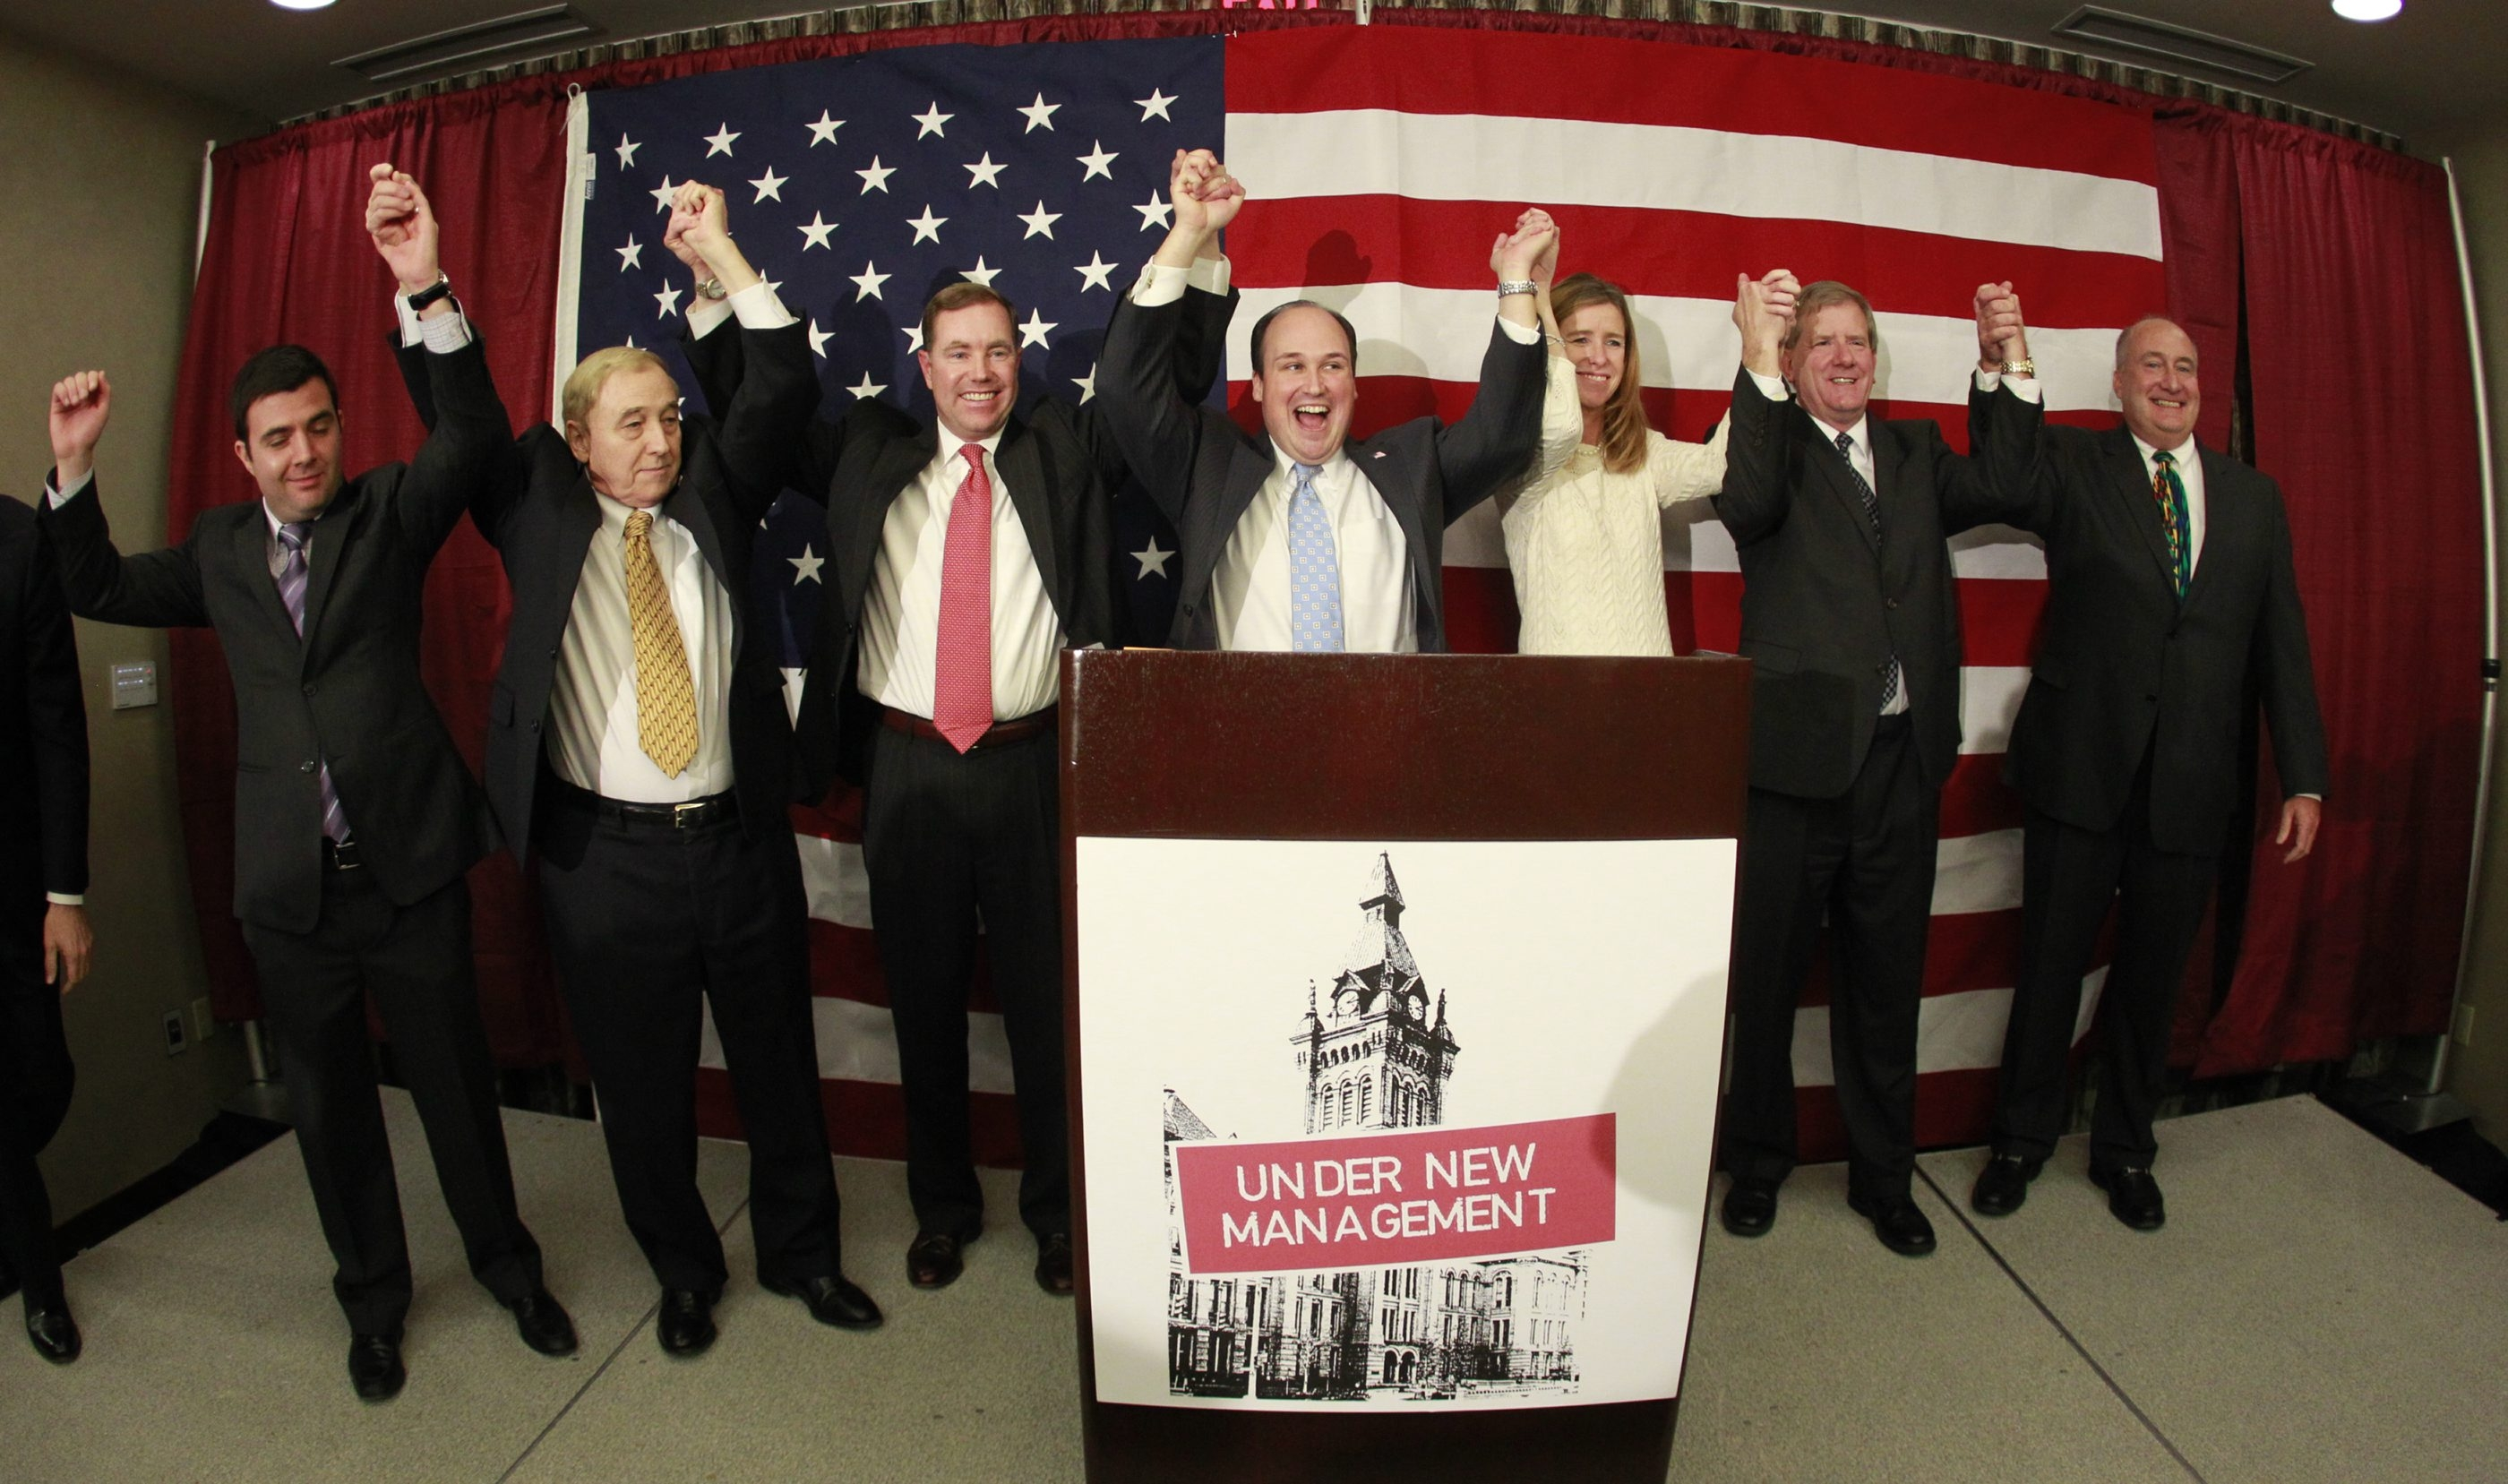 Erie County Republicans, legislators Joe Lorigo, John Mills and Ed Rath III, Party Chairman Nick Langworthy and legislators Lynne Dixon, Kevin Hardwick, and Ted Morton enjoy victory at the Embassy Suites Hotel Avant Building on Wednesday.